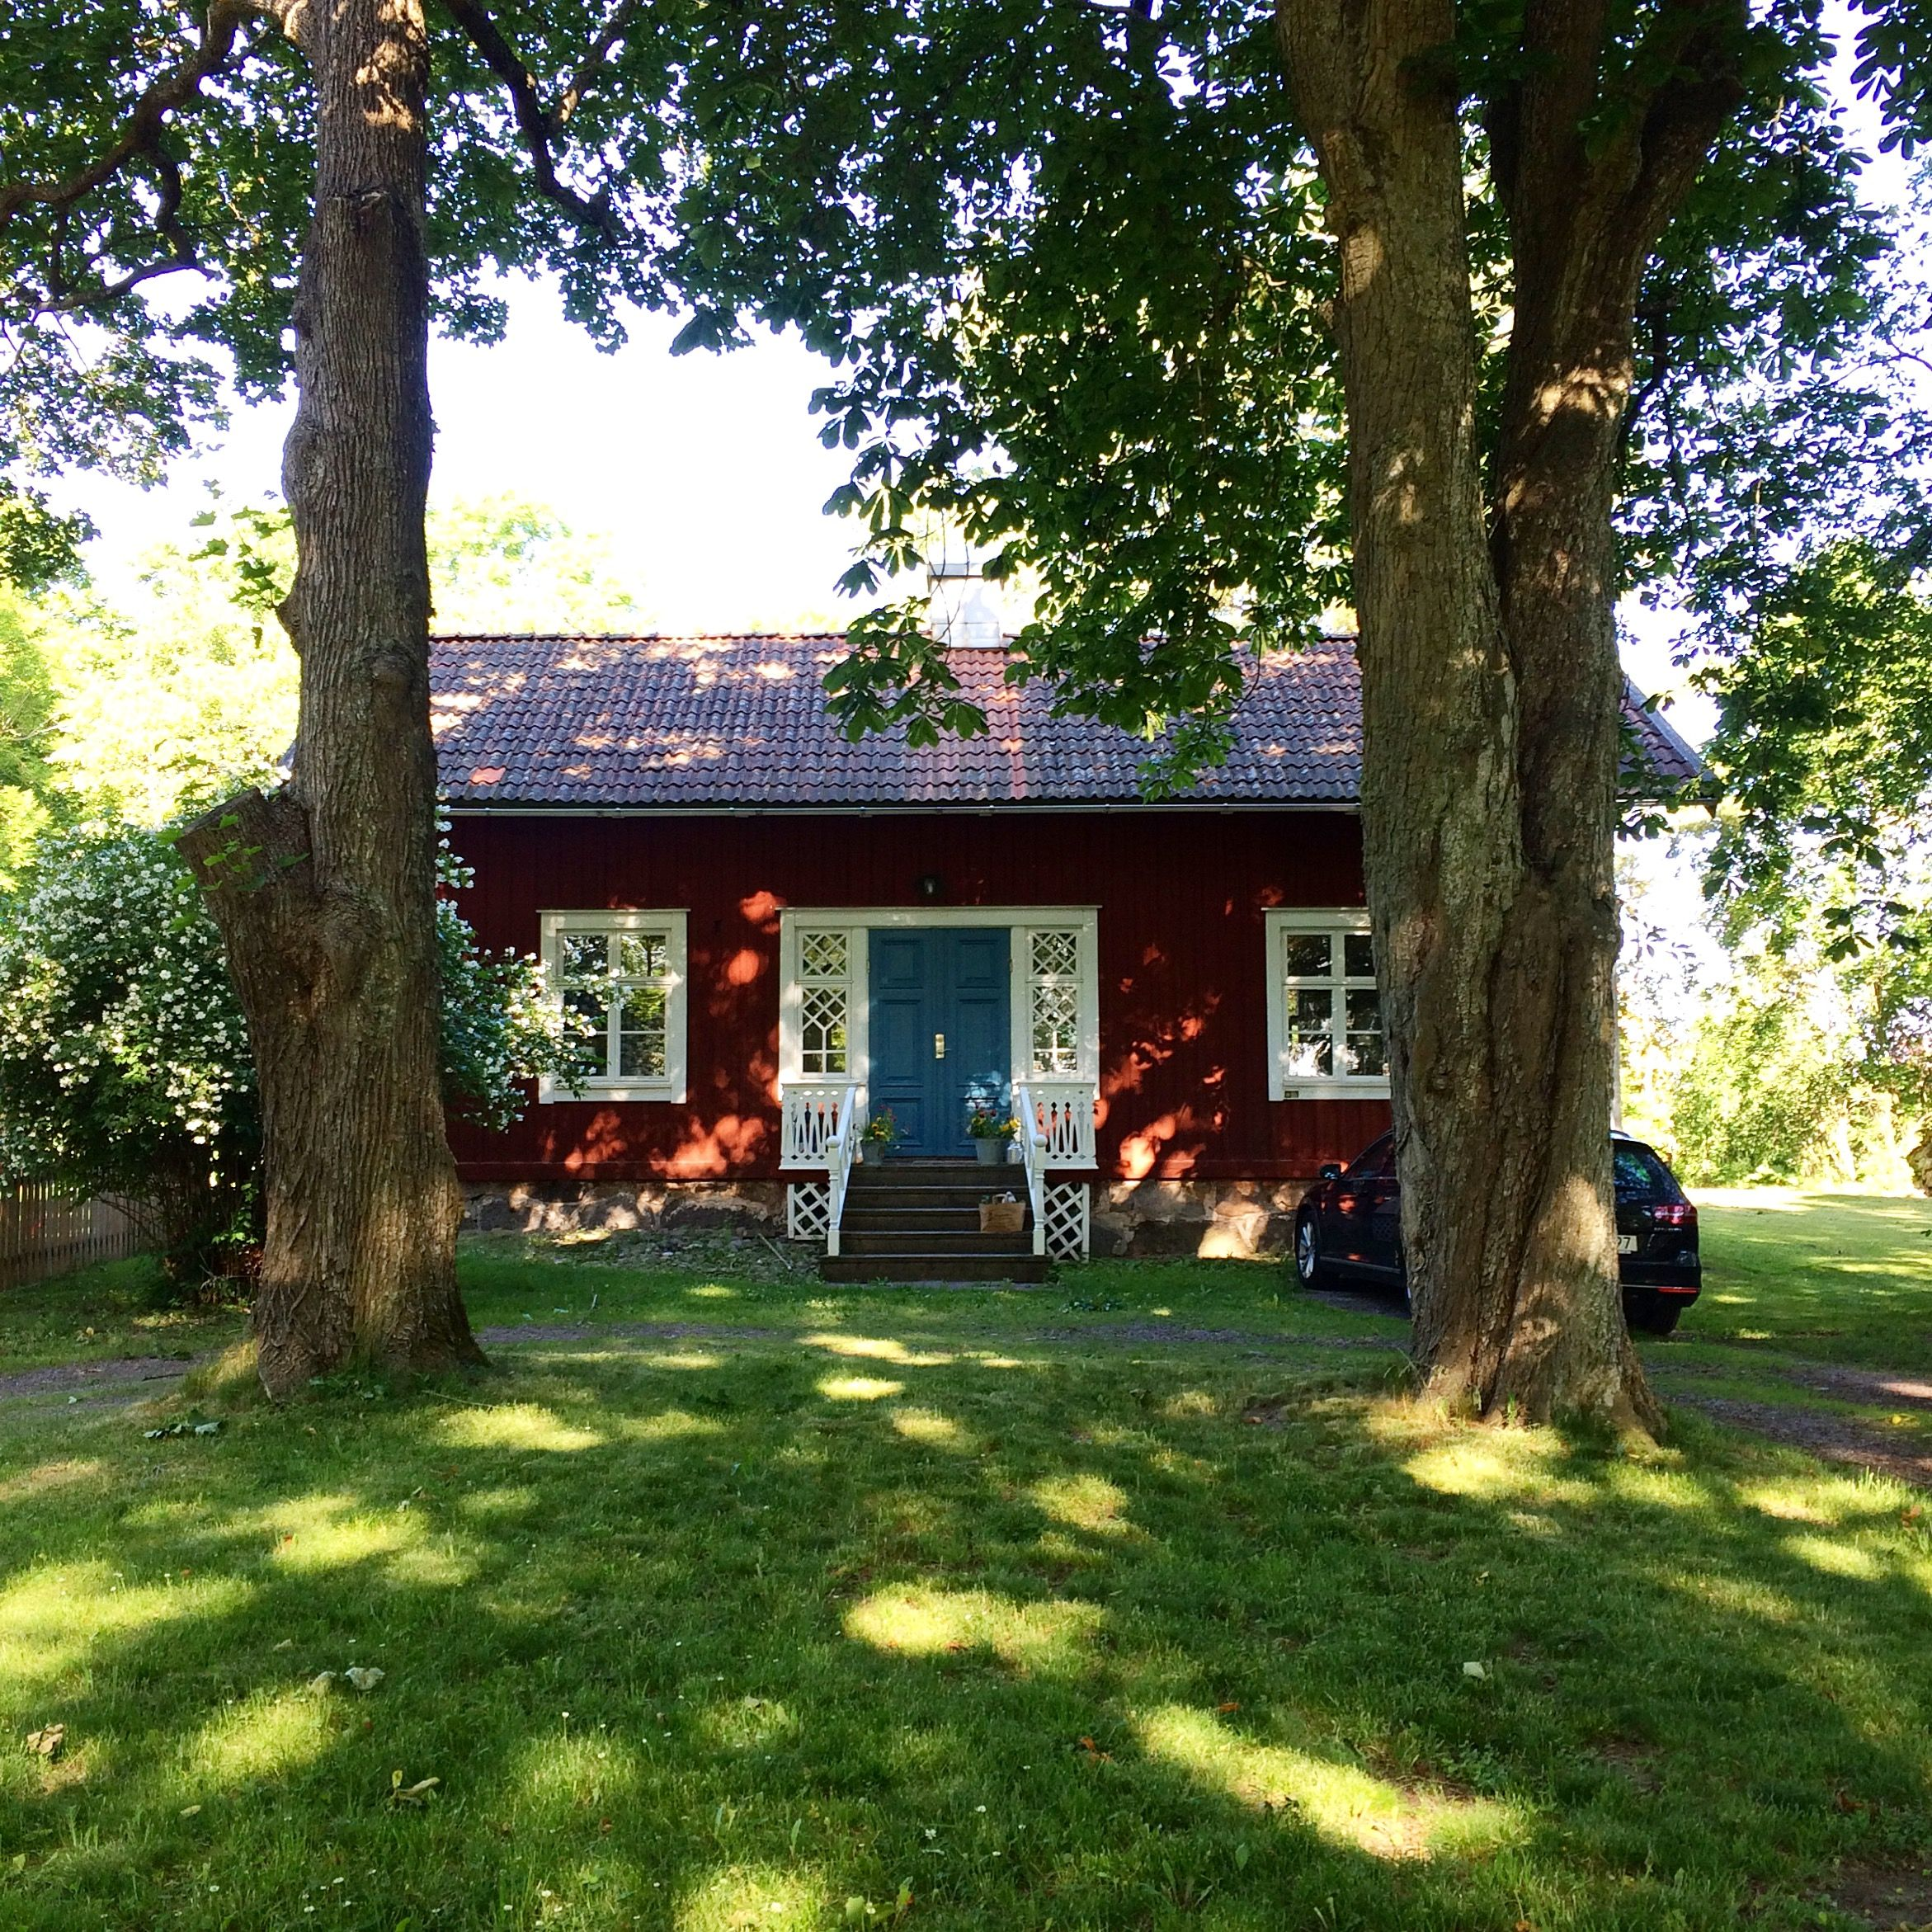 Red cottage in Sweden. My home ❤️